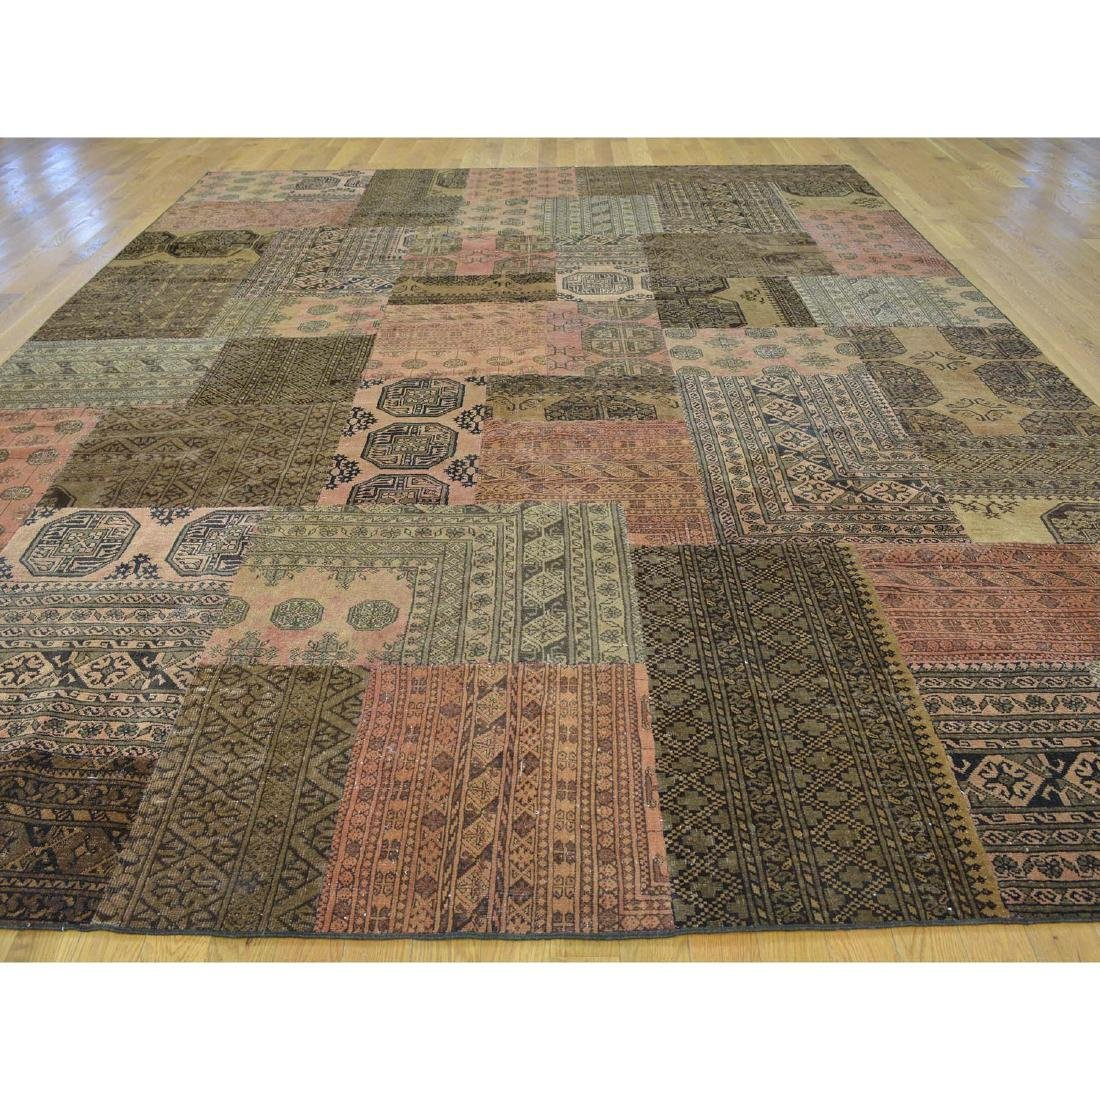 Pure Wool Afghan Patchwork Hand Knotted Rug 9x12 - 2